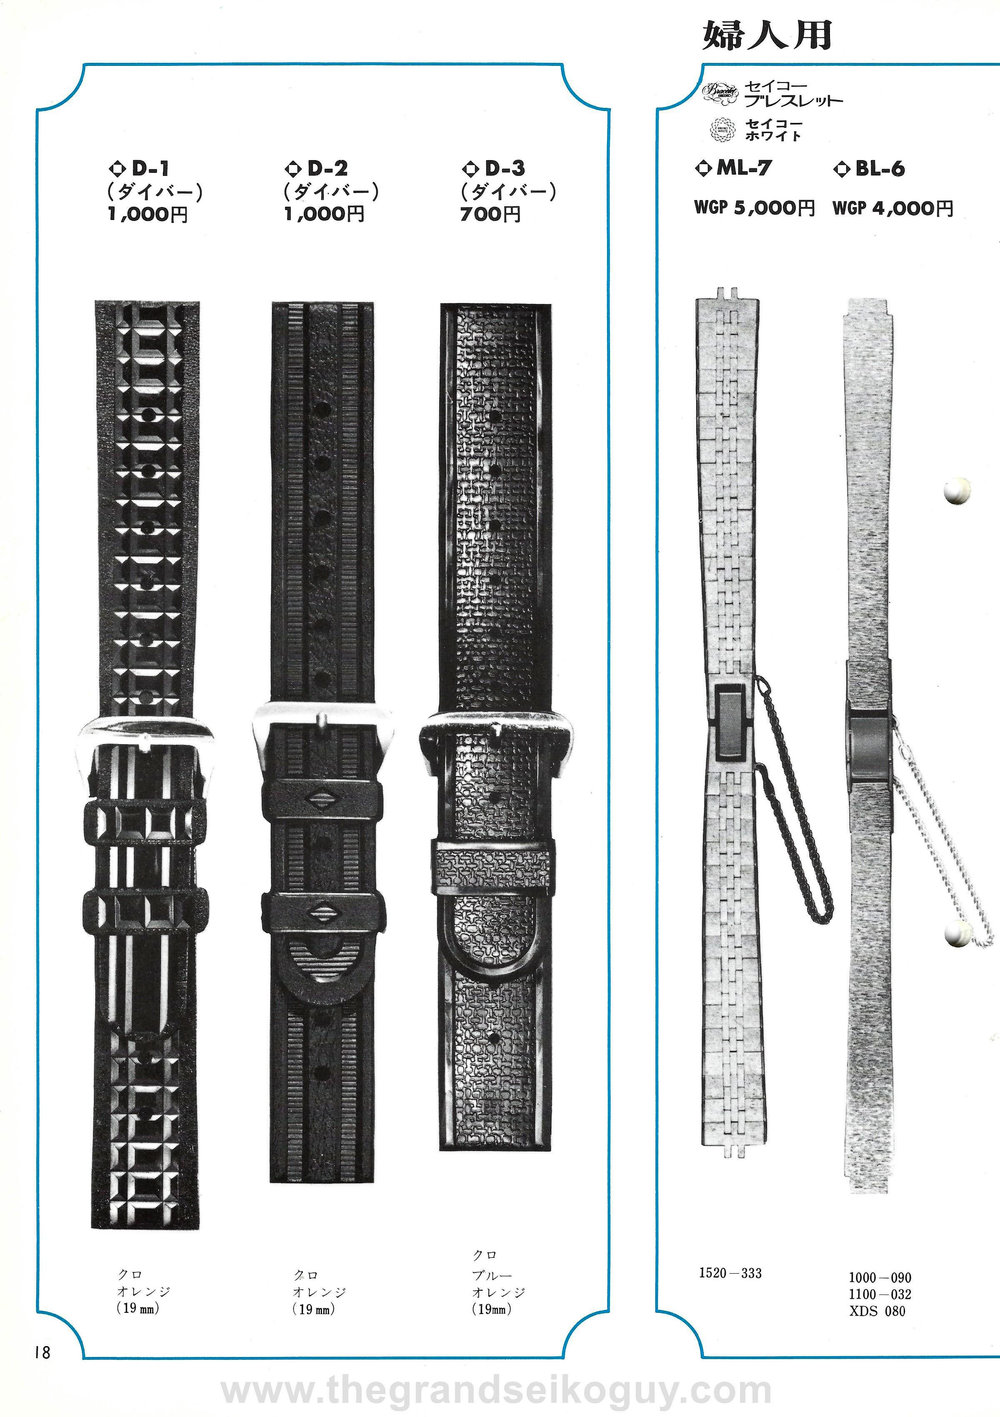 1972 No.1 Watchband Catalog